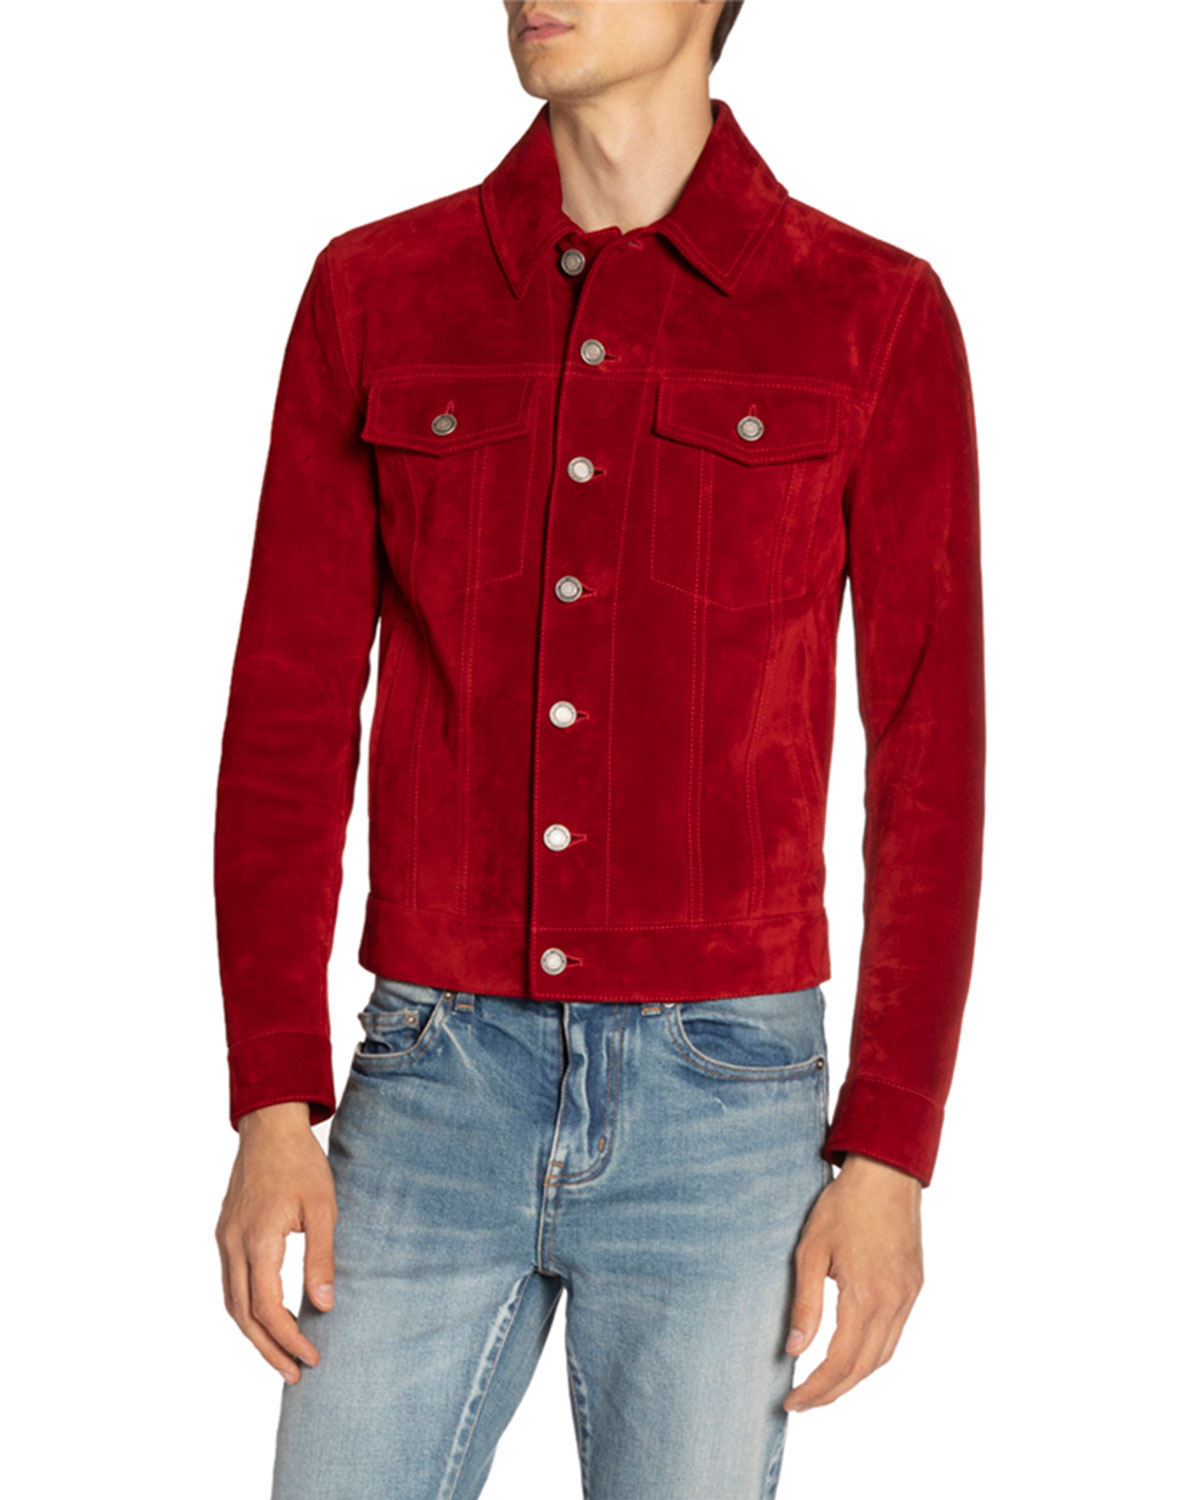 Saint Laurent Men's Suede Trucker Jacket